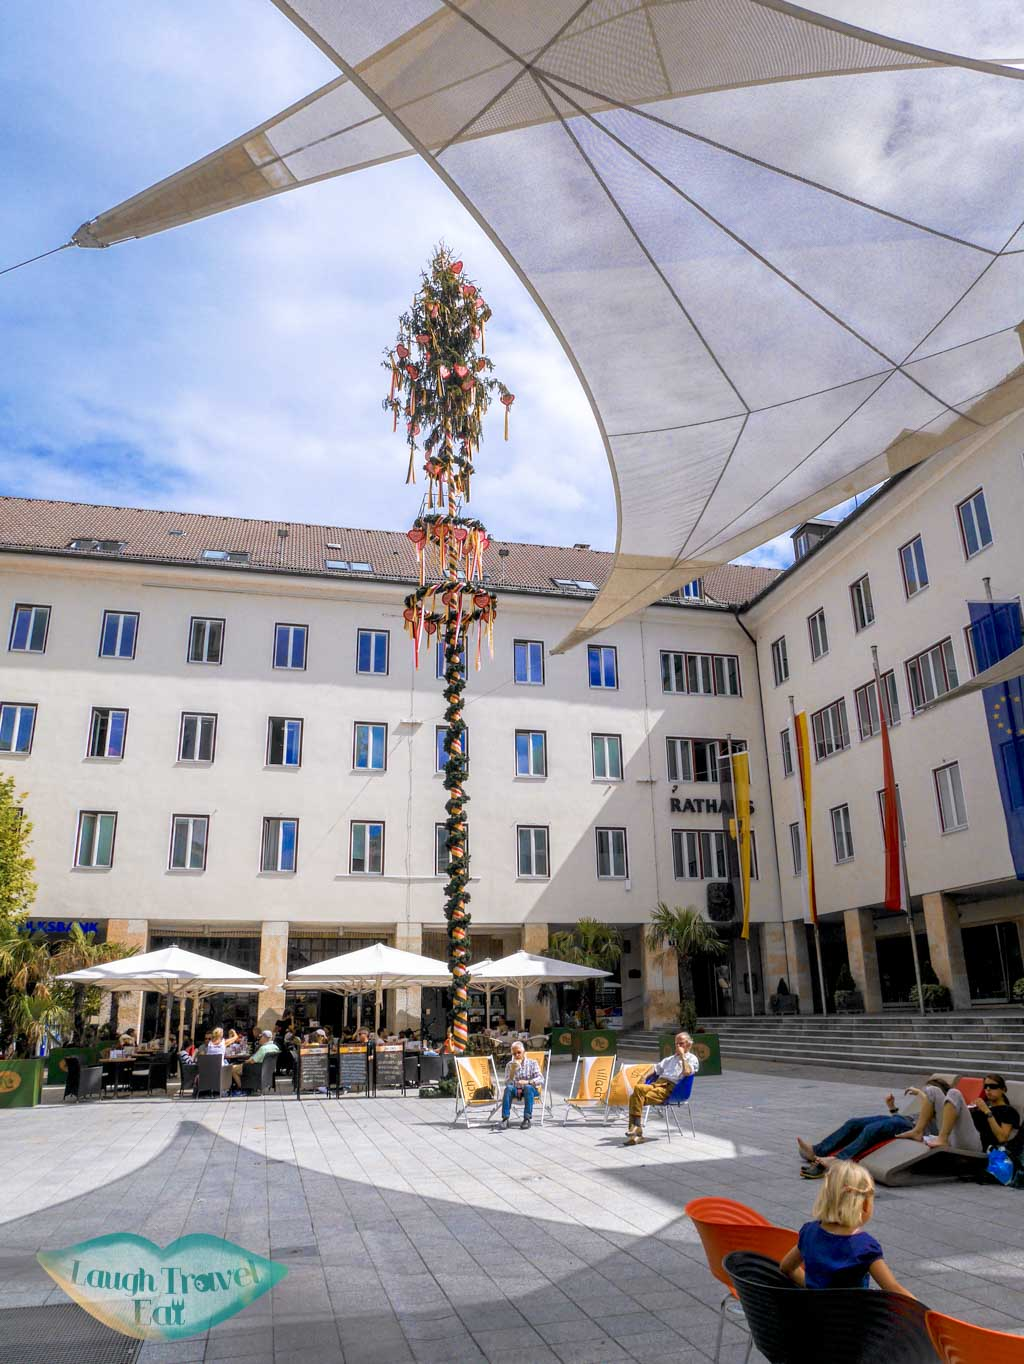 Villach-Town-Hall-Villach-Austria-Laugh-Travel-Eat